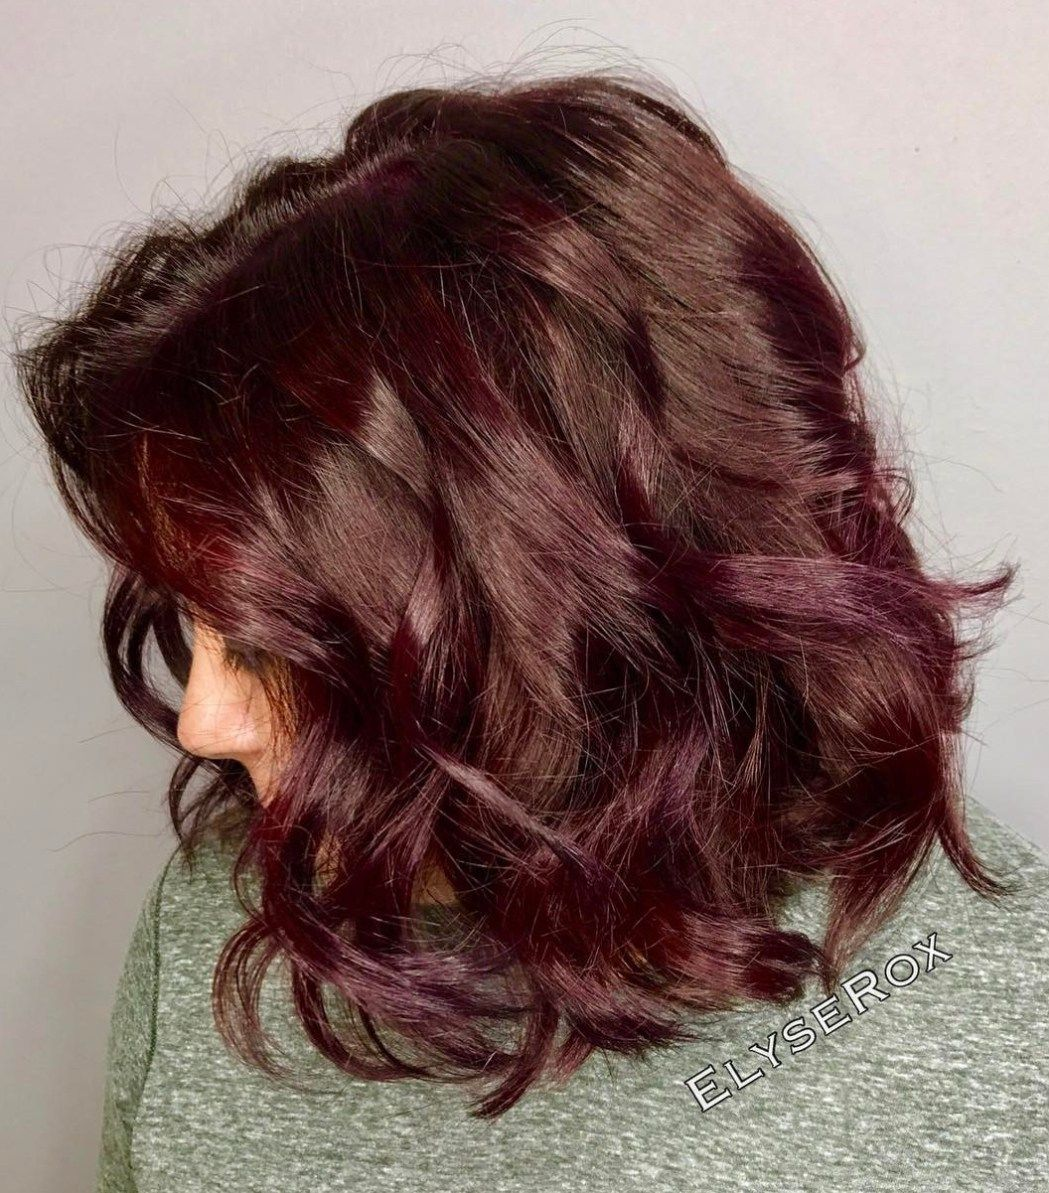 20 Plum Hair Color Ideas For Your Next Makeover Hair Pinterest